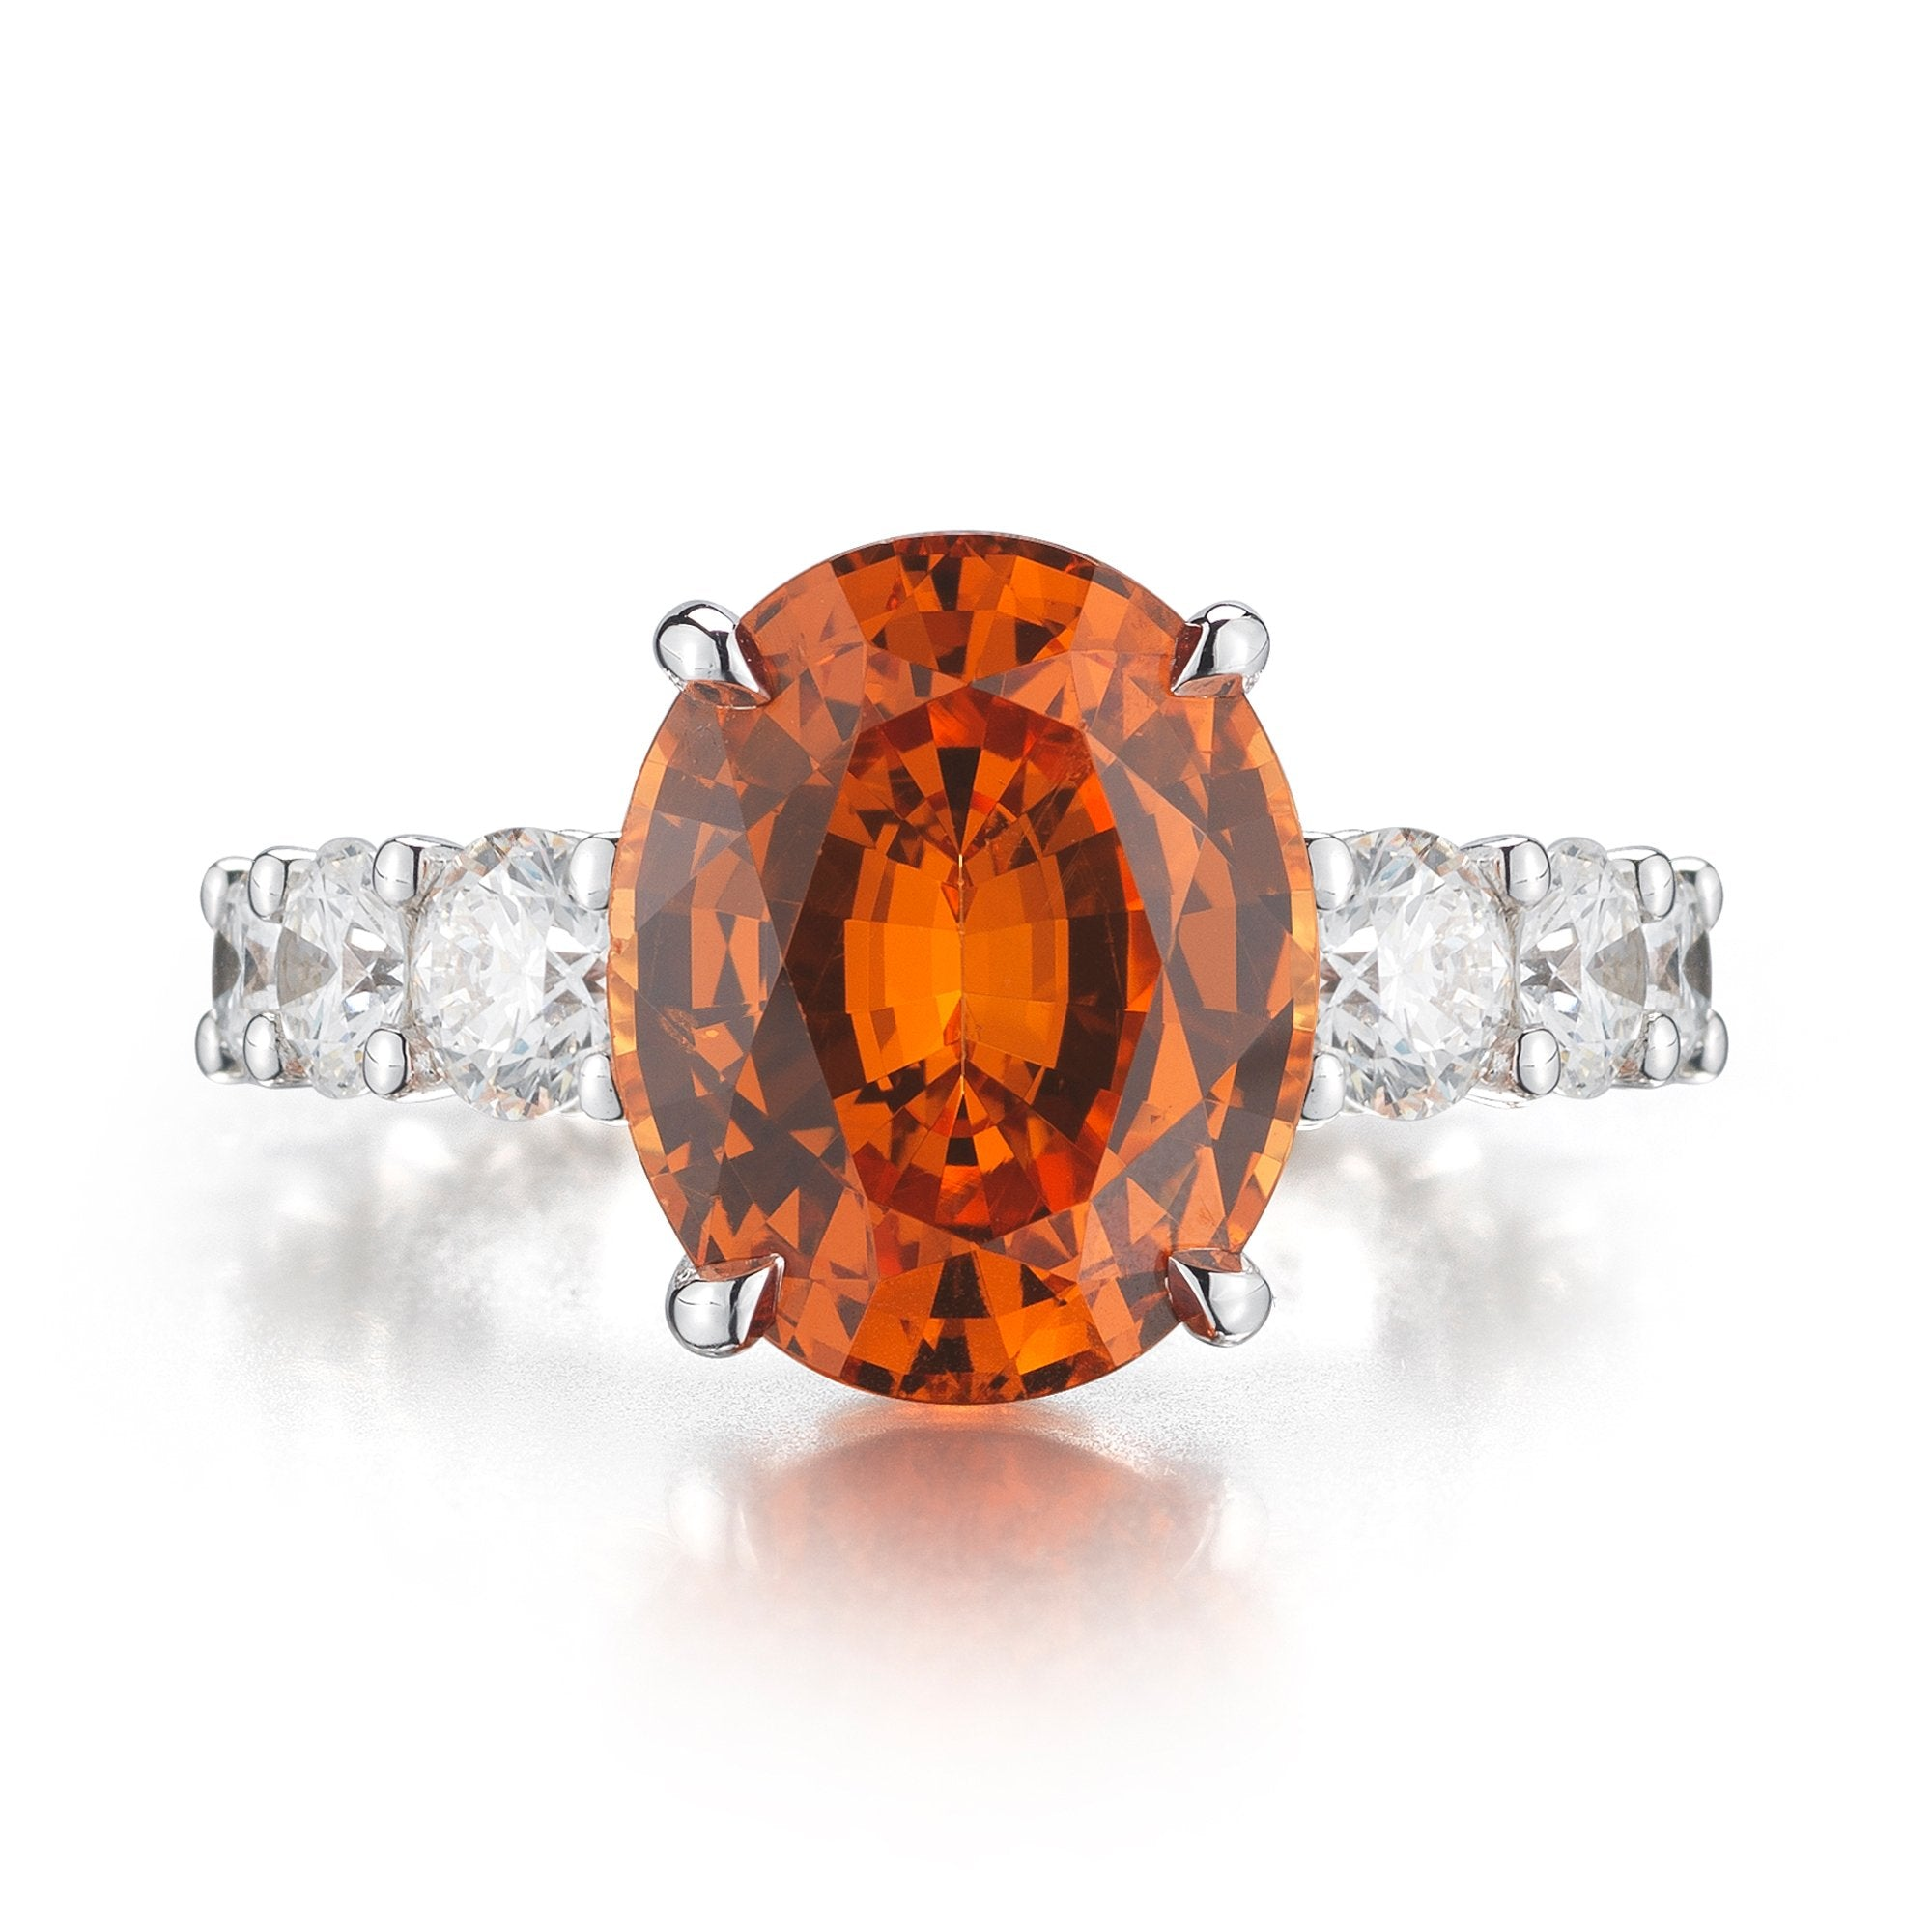 Mandarin Garnet and Diamond 'Eternita' Ring - Paolo Costagli - 1